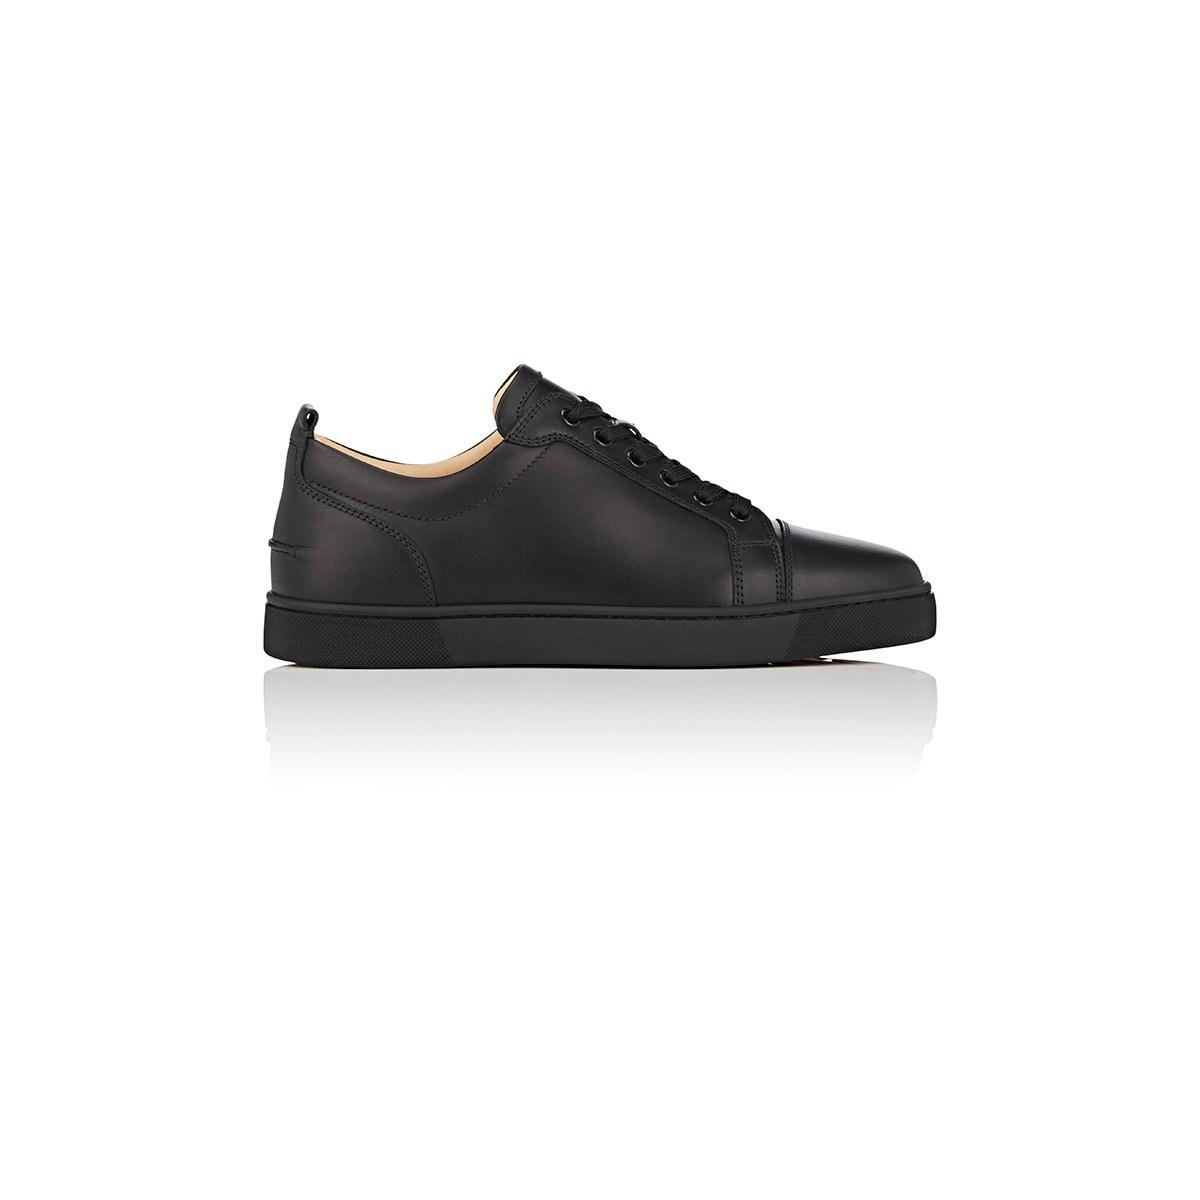 64bdec8b12a Christian Louboutin Louis Junior Flat Leather Sneakers in Black for ...